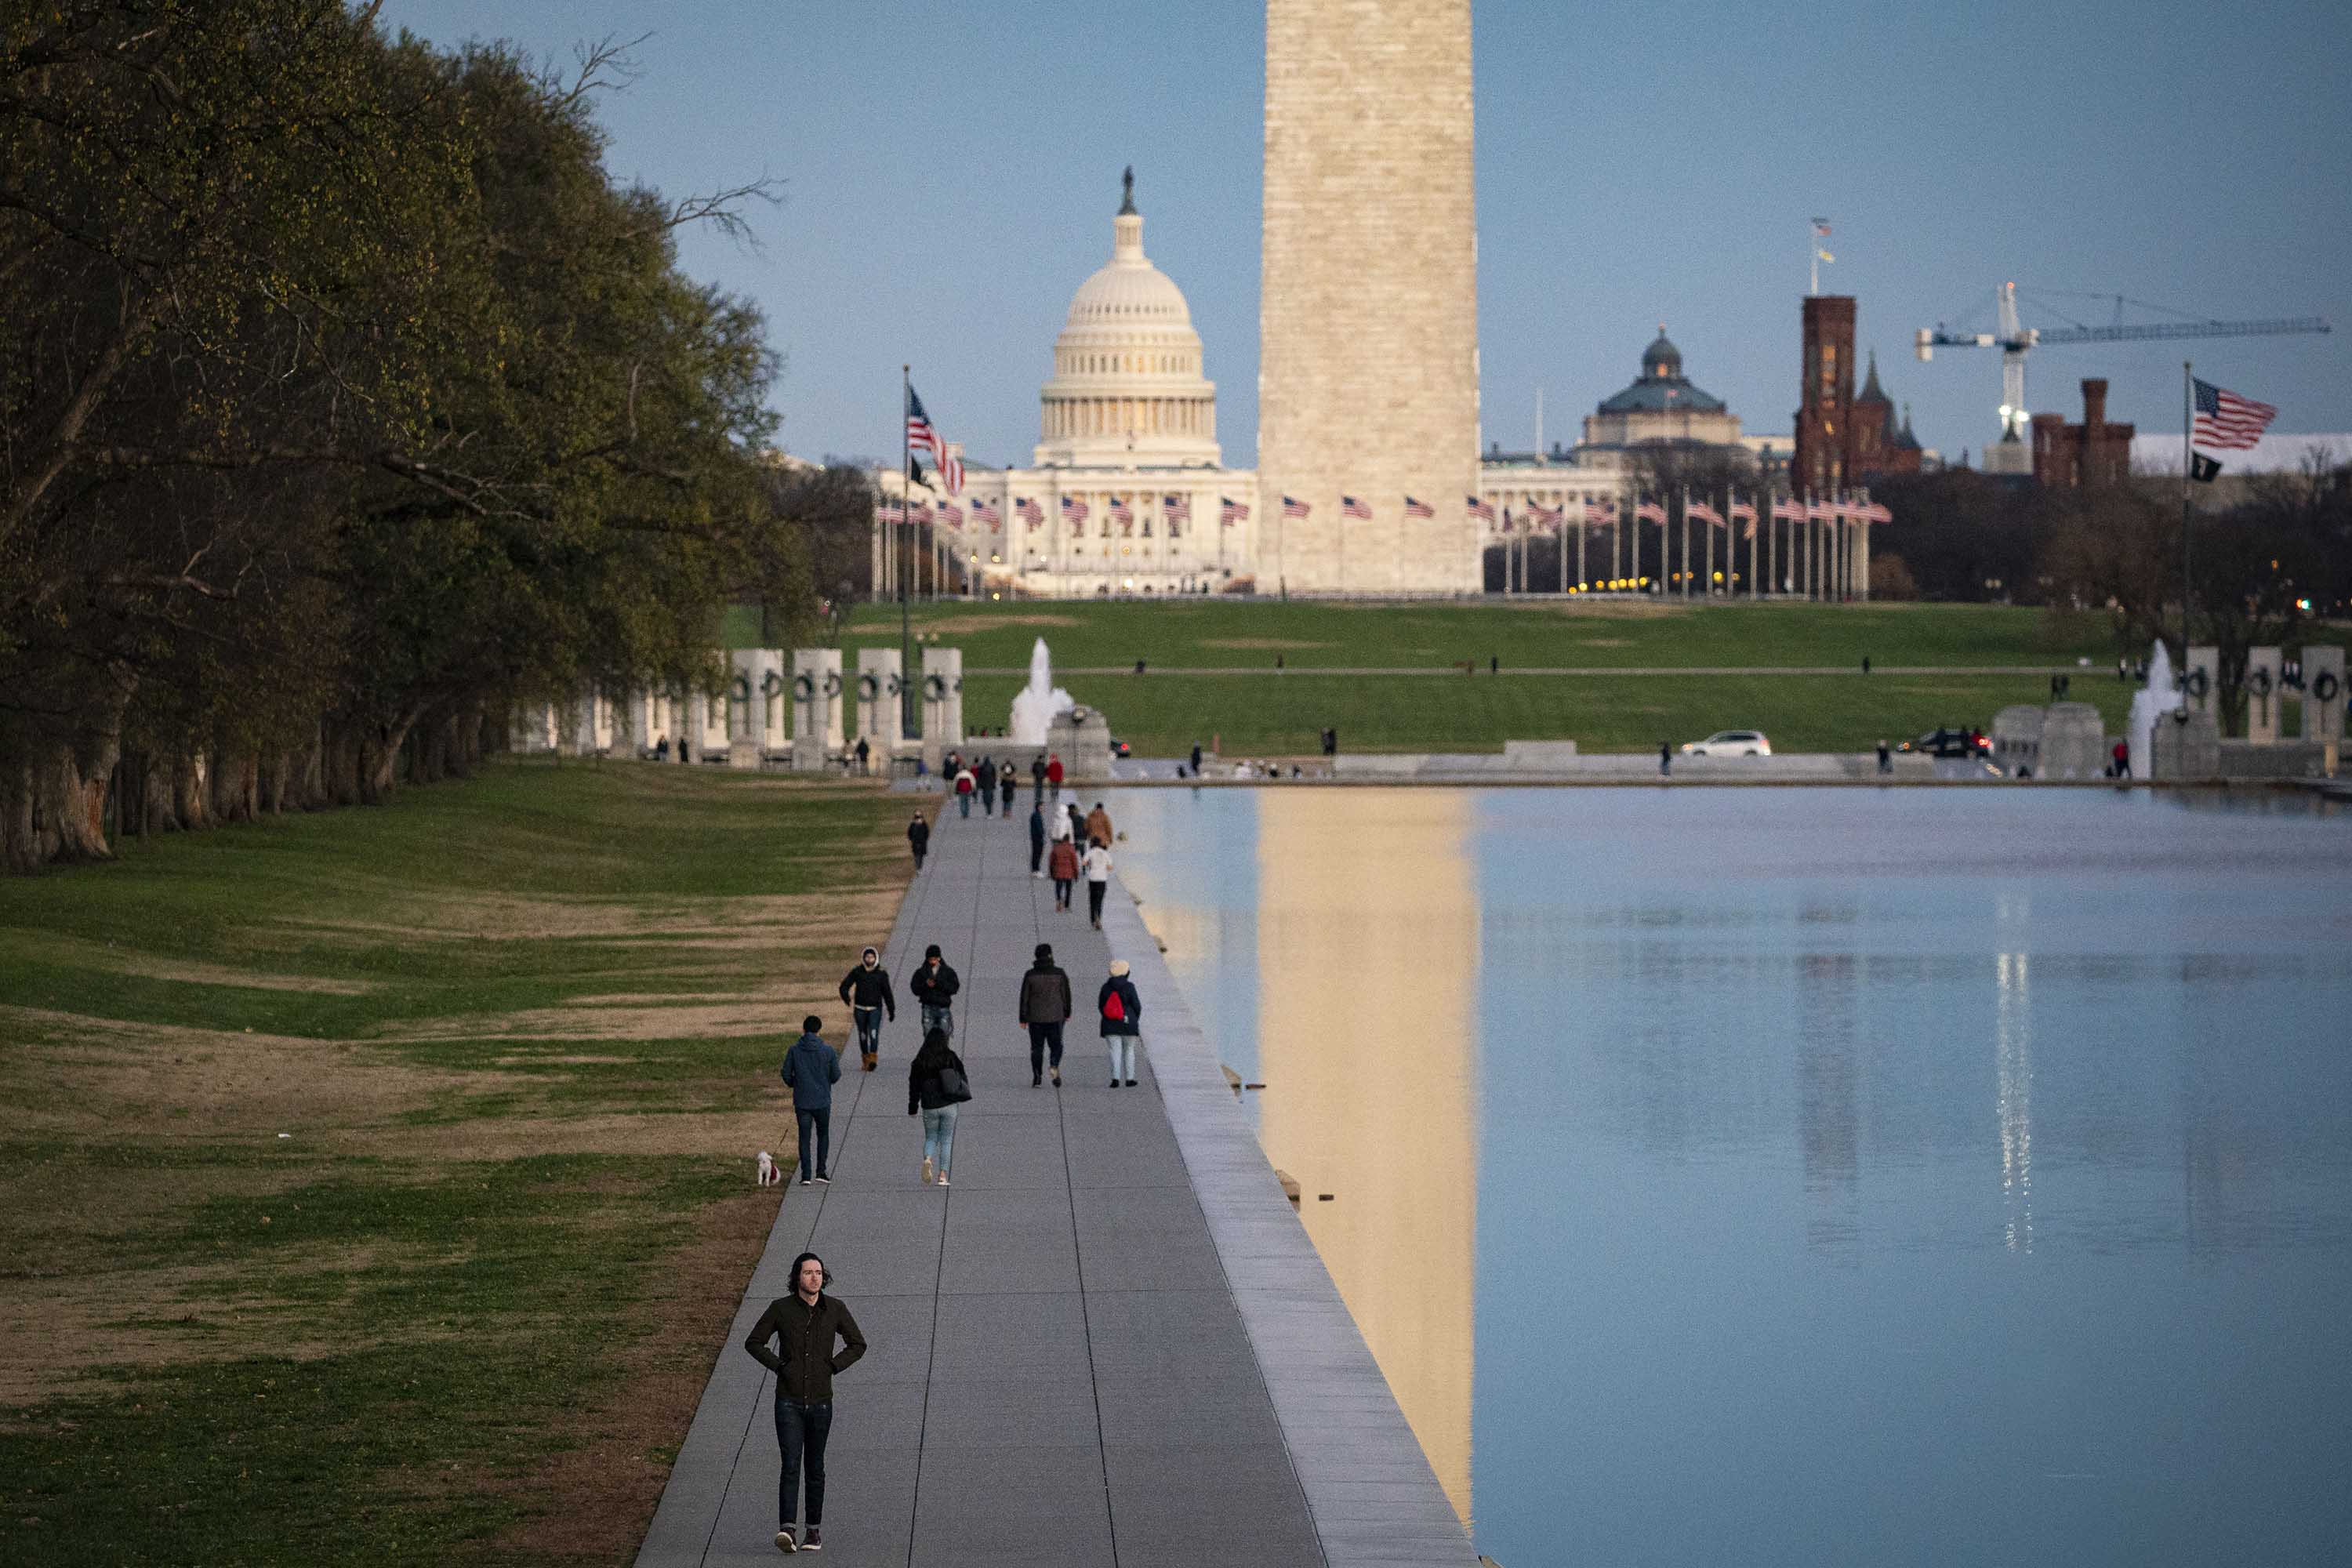 The U.S. Capitol and Washington Monument are pictured as people walk along the Reflecting Pool on the National Mall, on December 6, in Washington, DC.